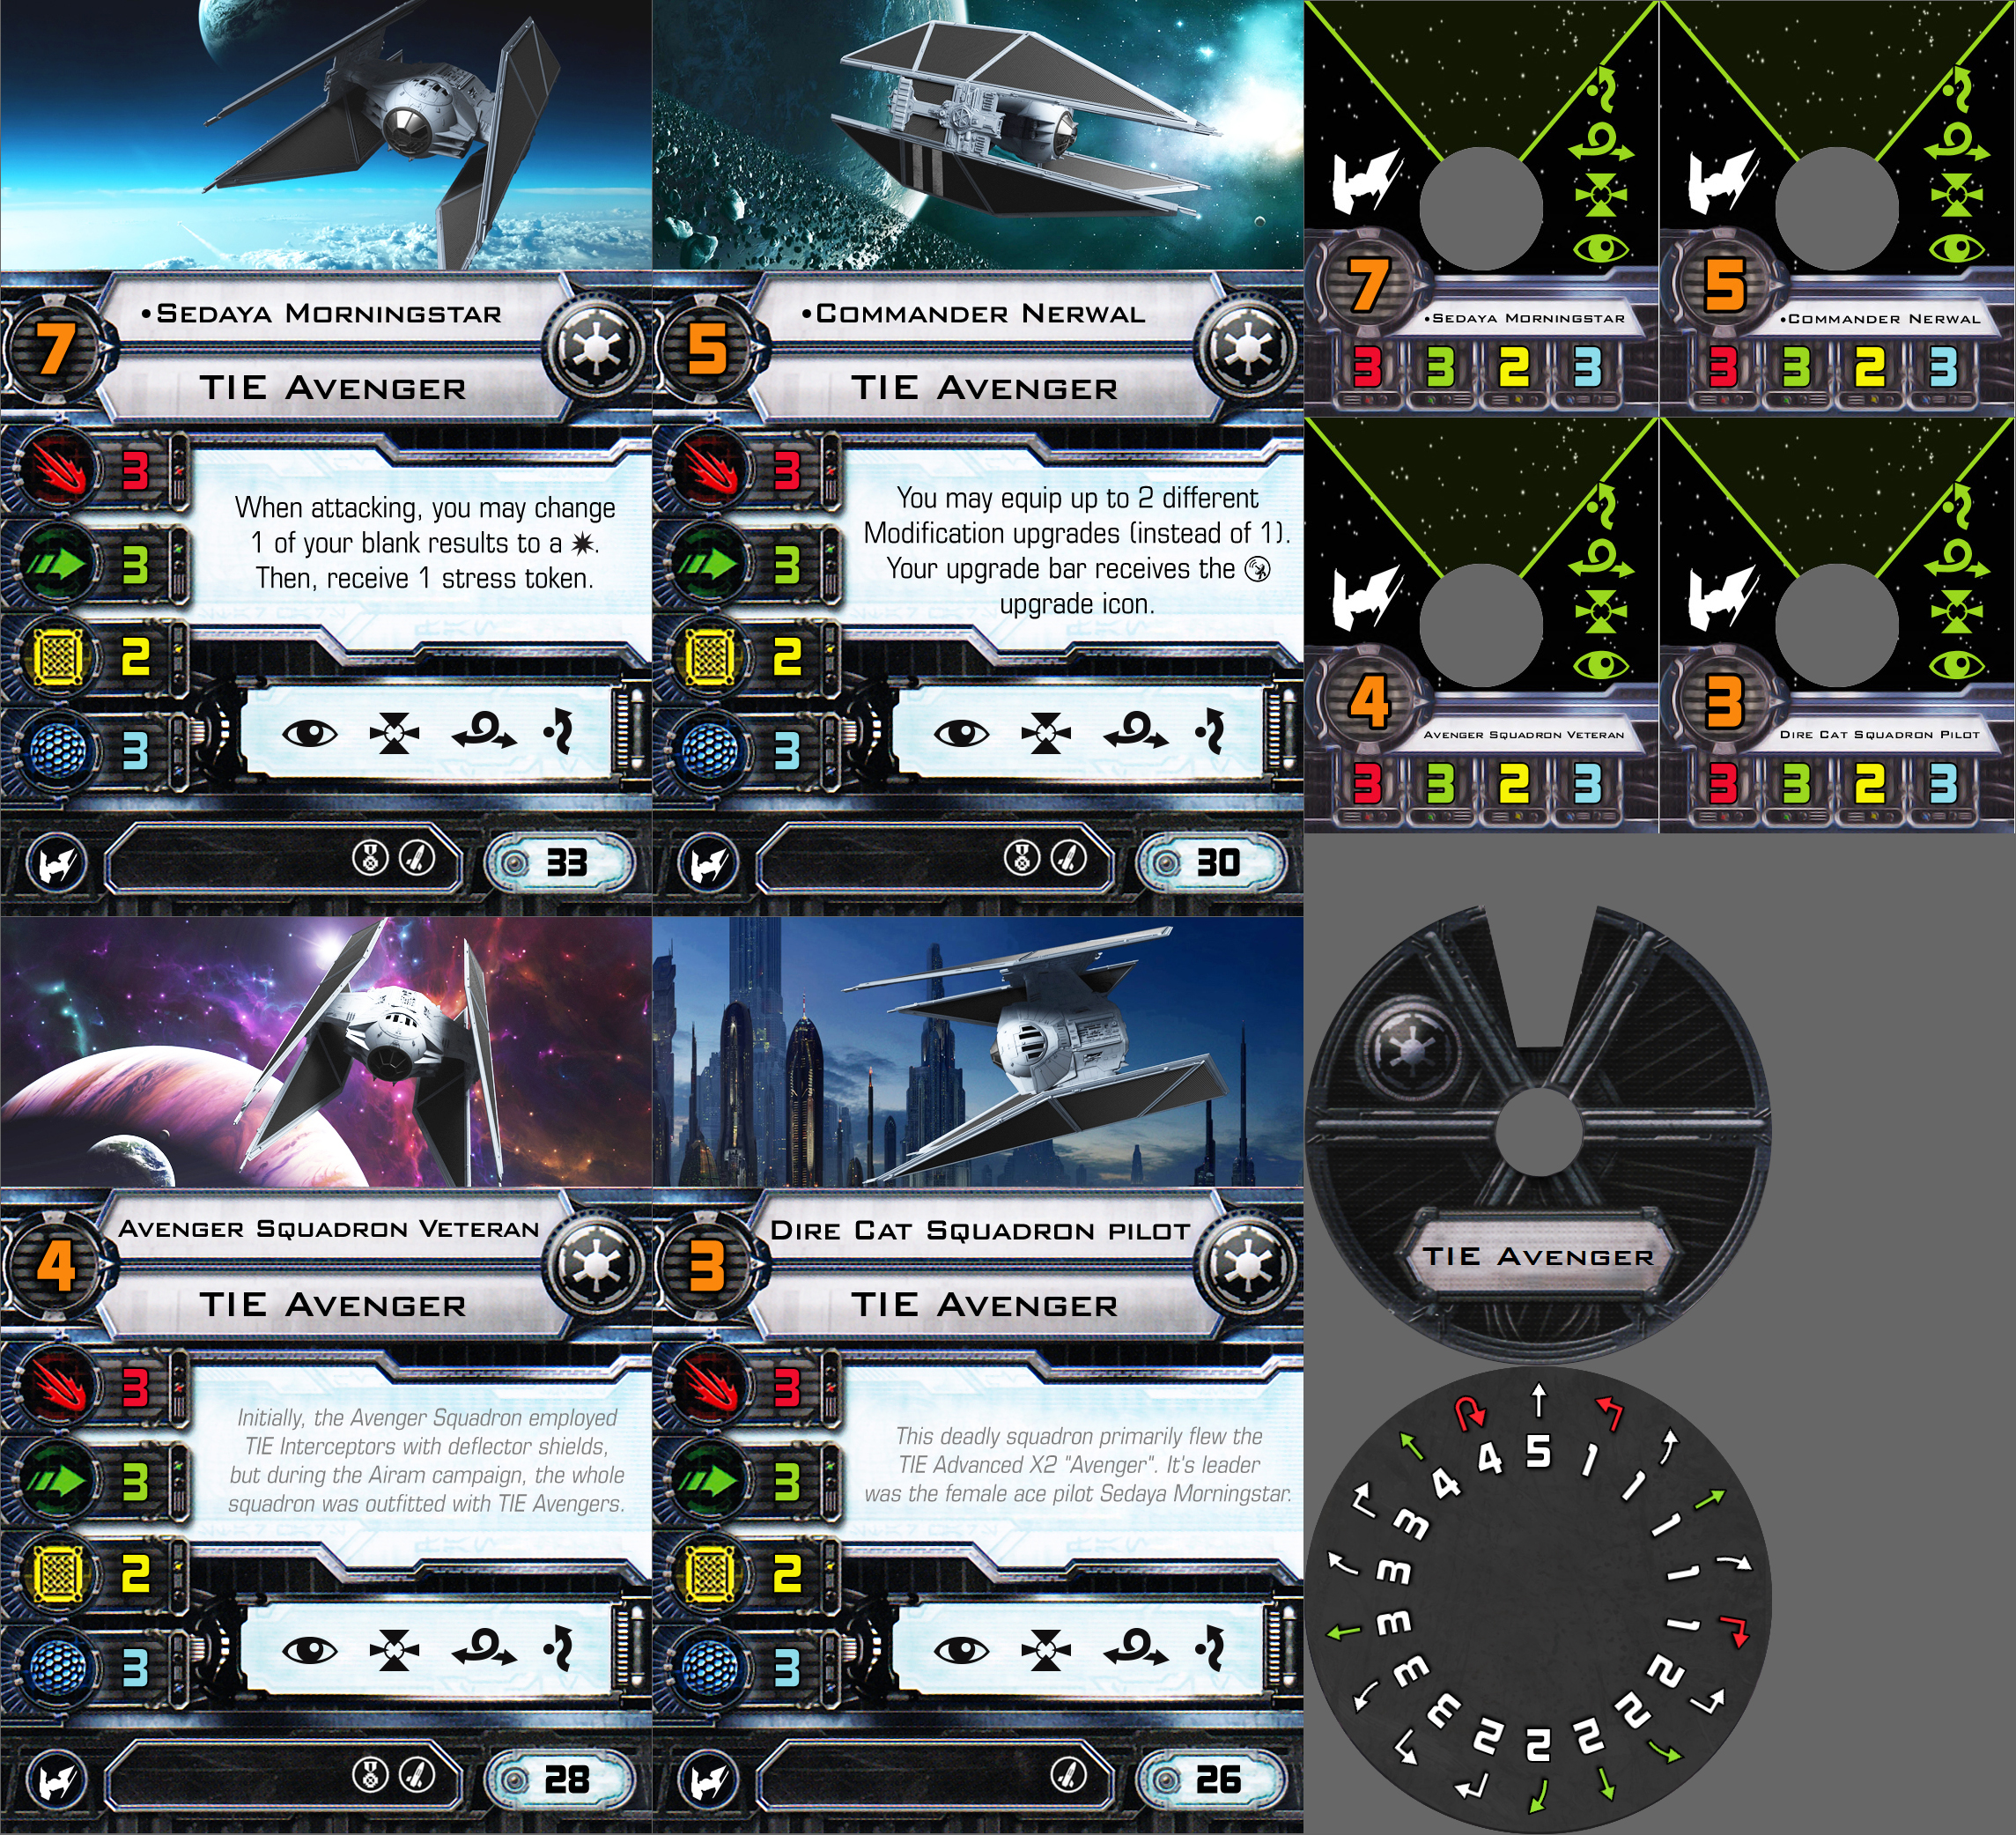 x_wing_miniatures_game___ship__tie_aveng